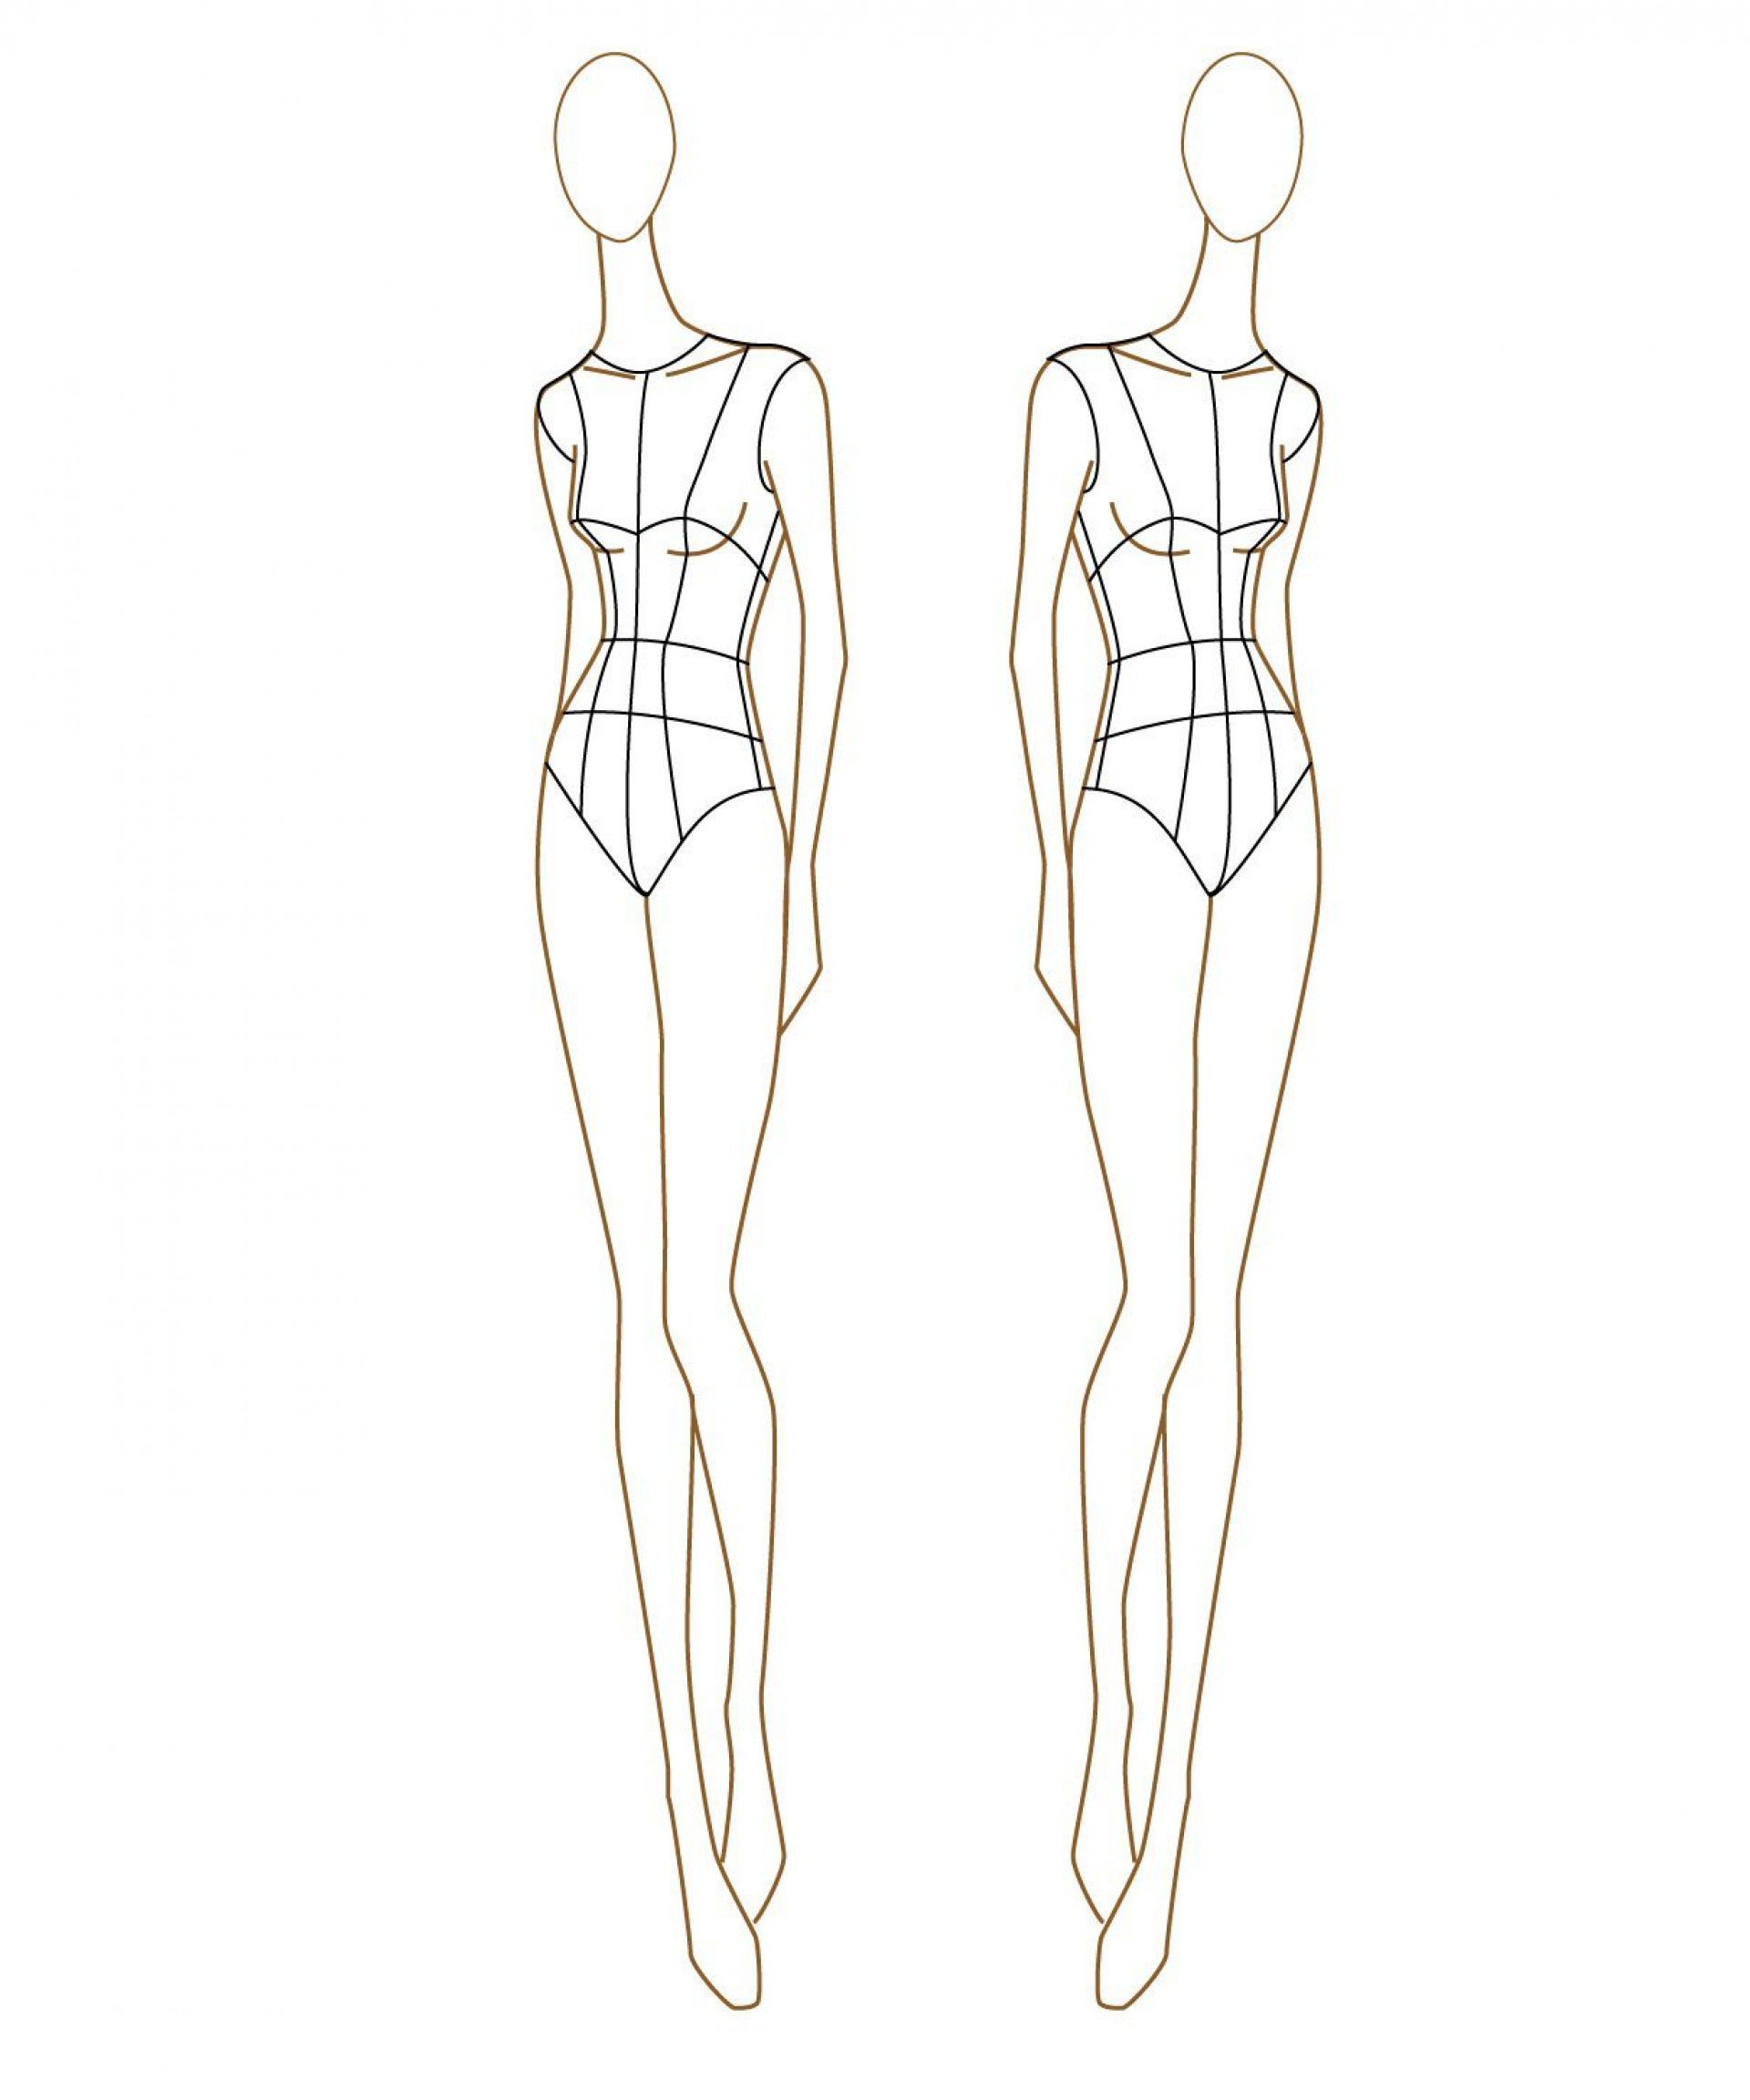 Body Template For Fashion Design Addictionary